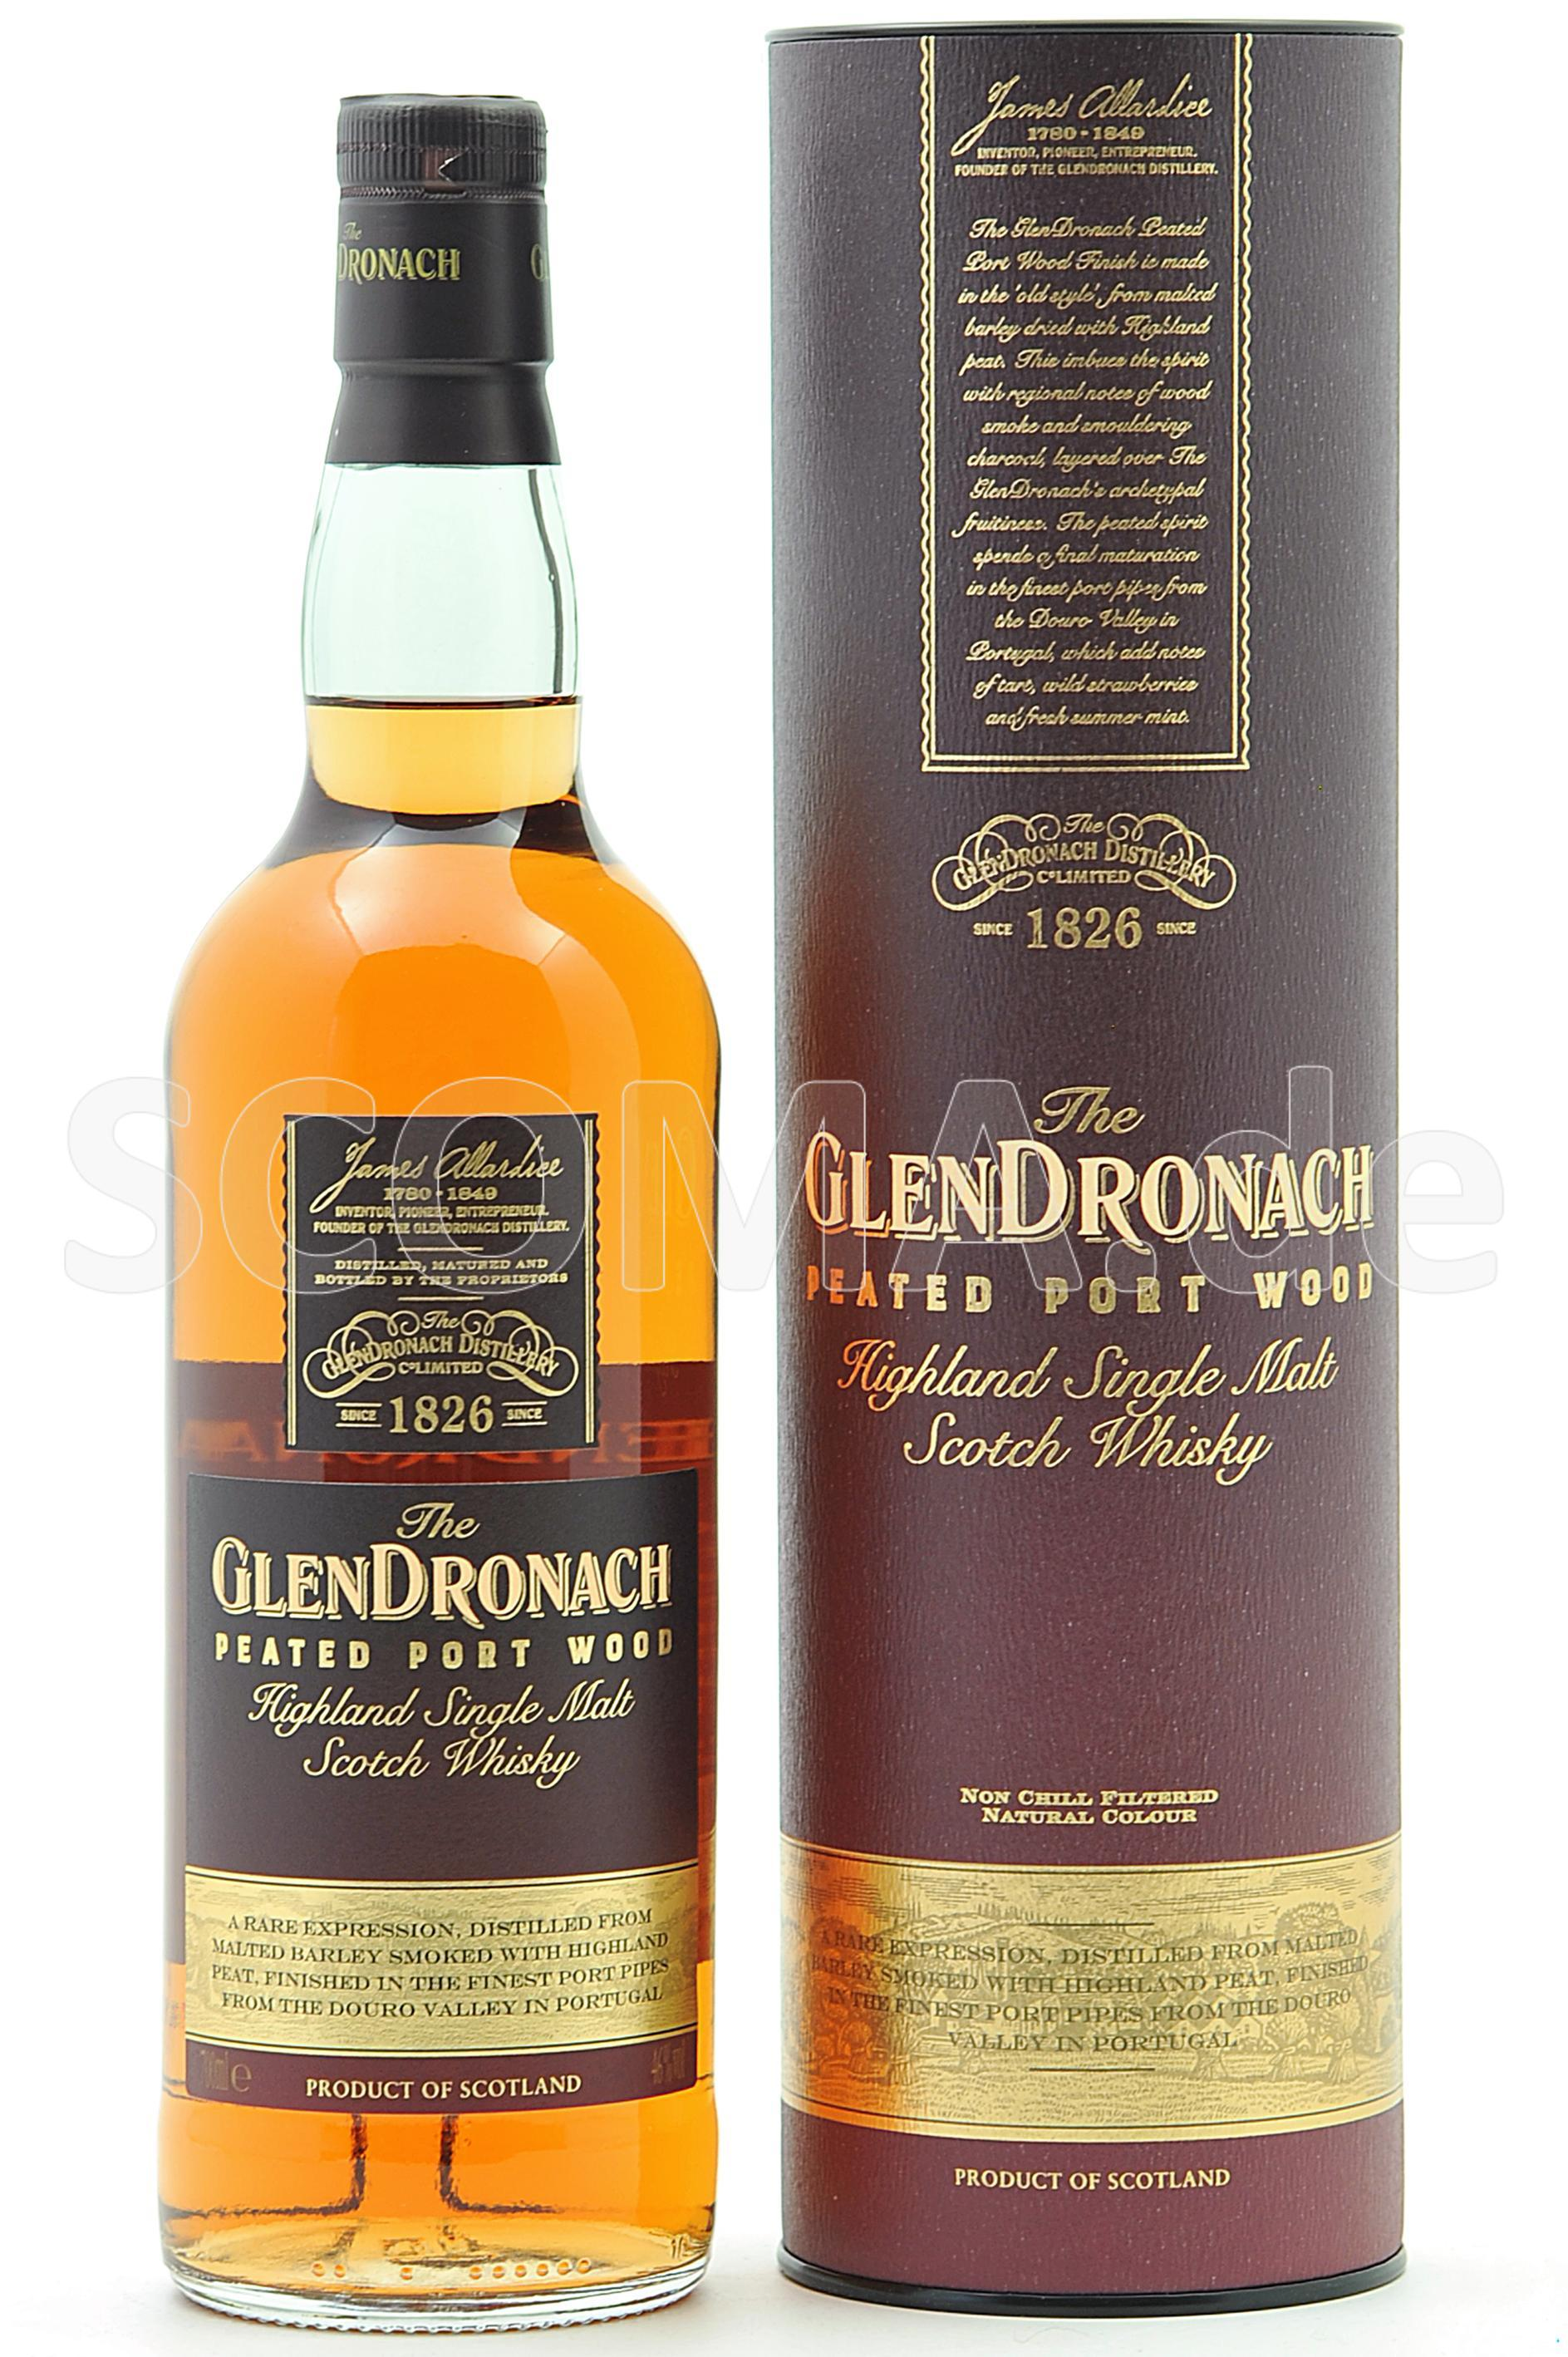 GlenDronach Peated Port Cask